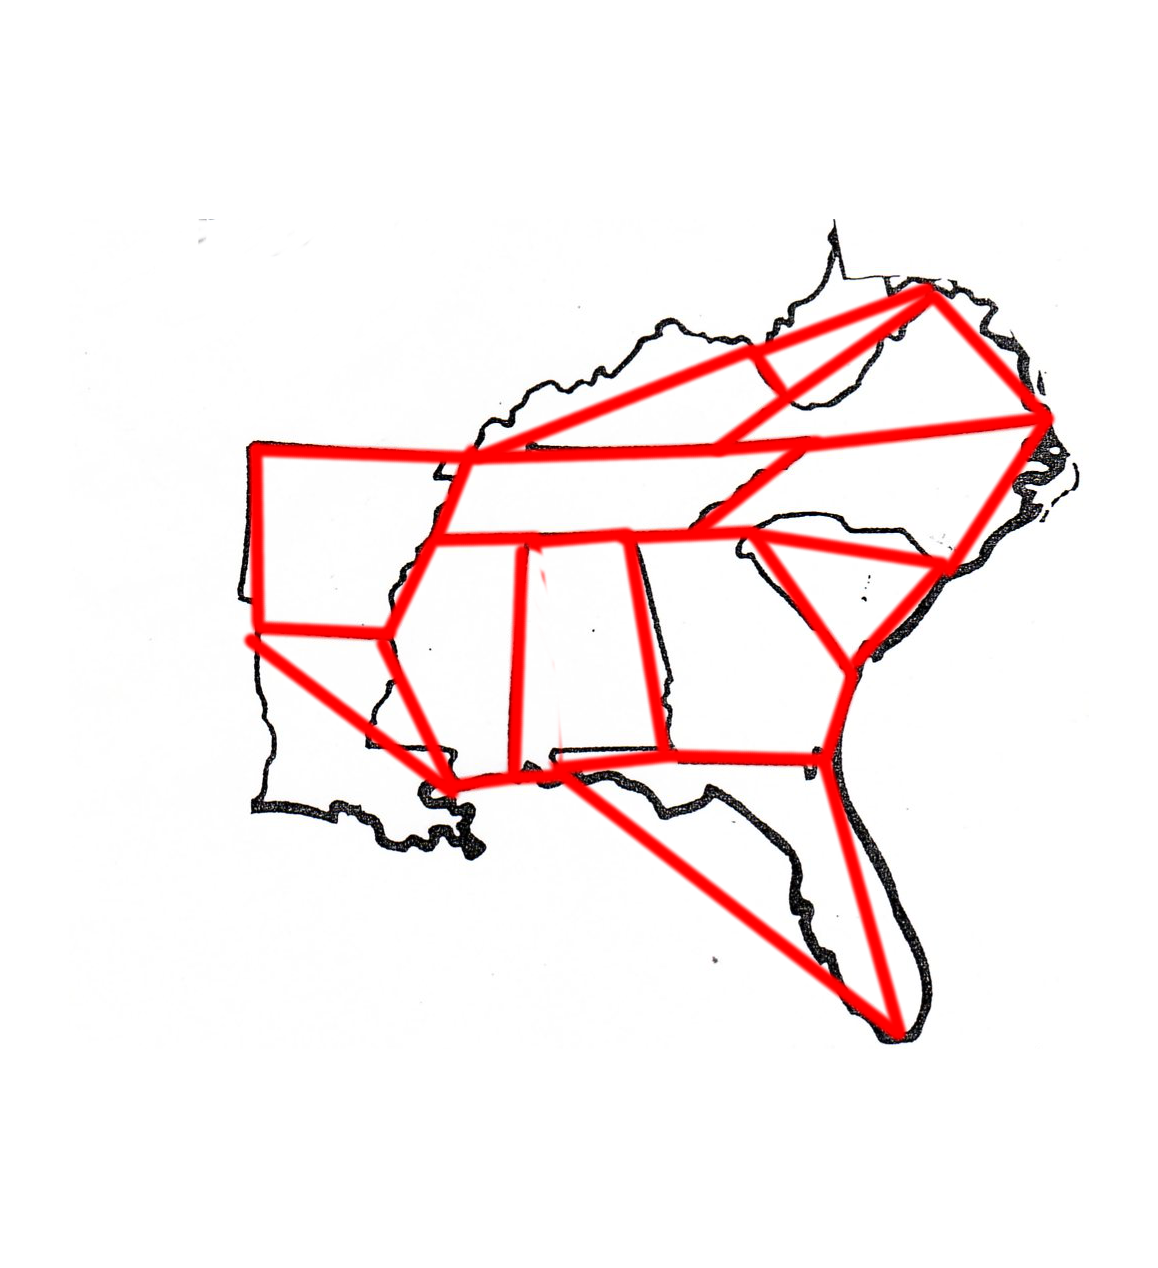 the distinct regions in this case states can be labeled or numbered and removed from the original map